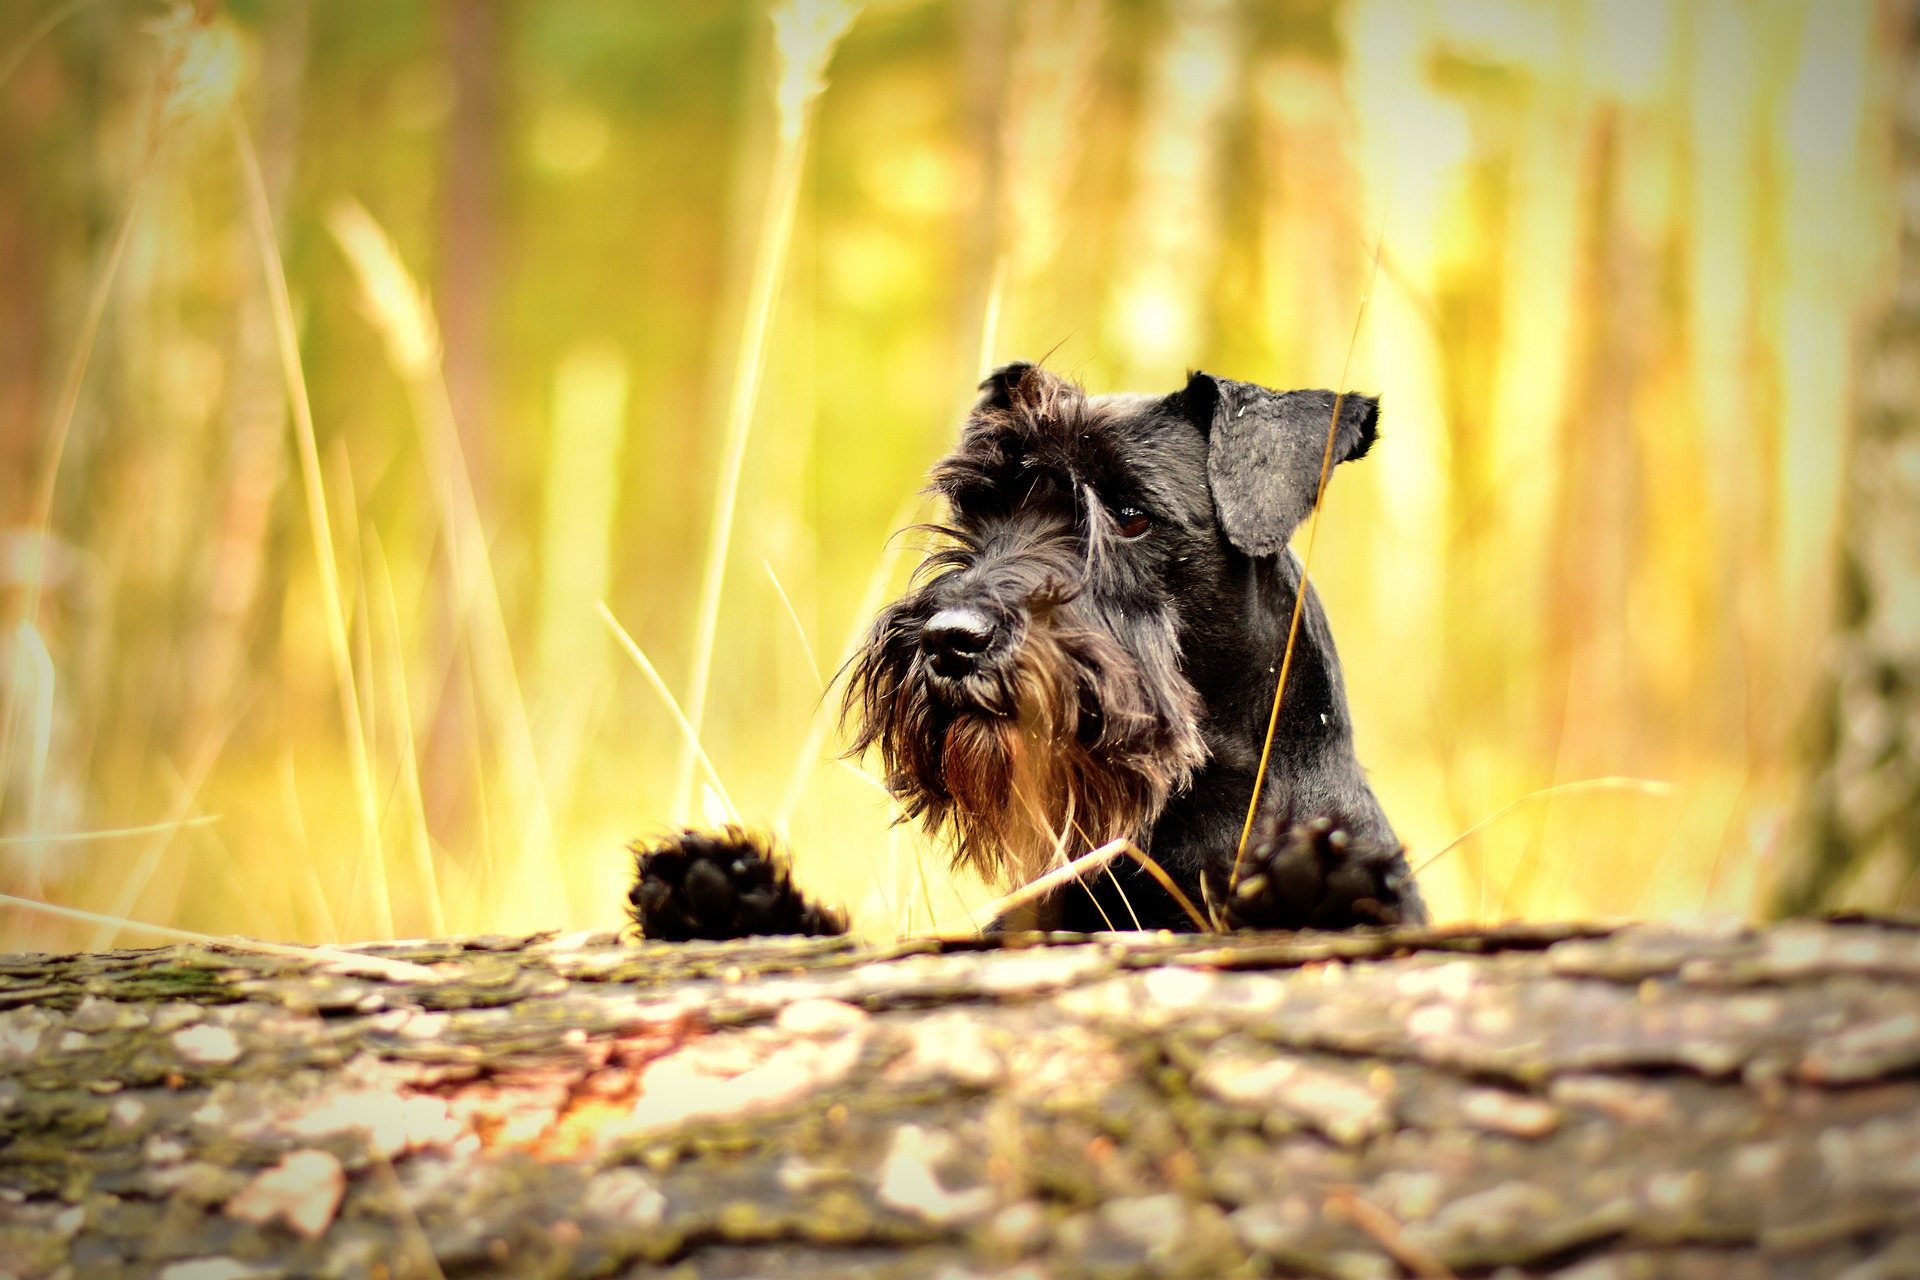 Do Miniature Schnauzer Make Good Pets?